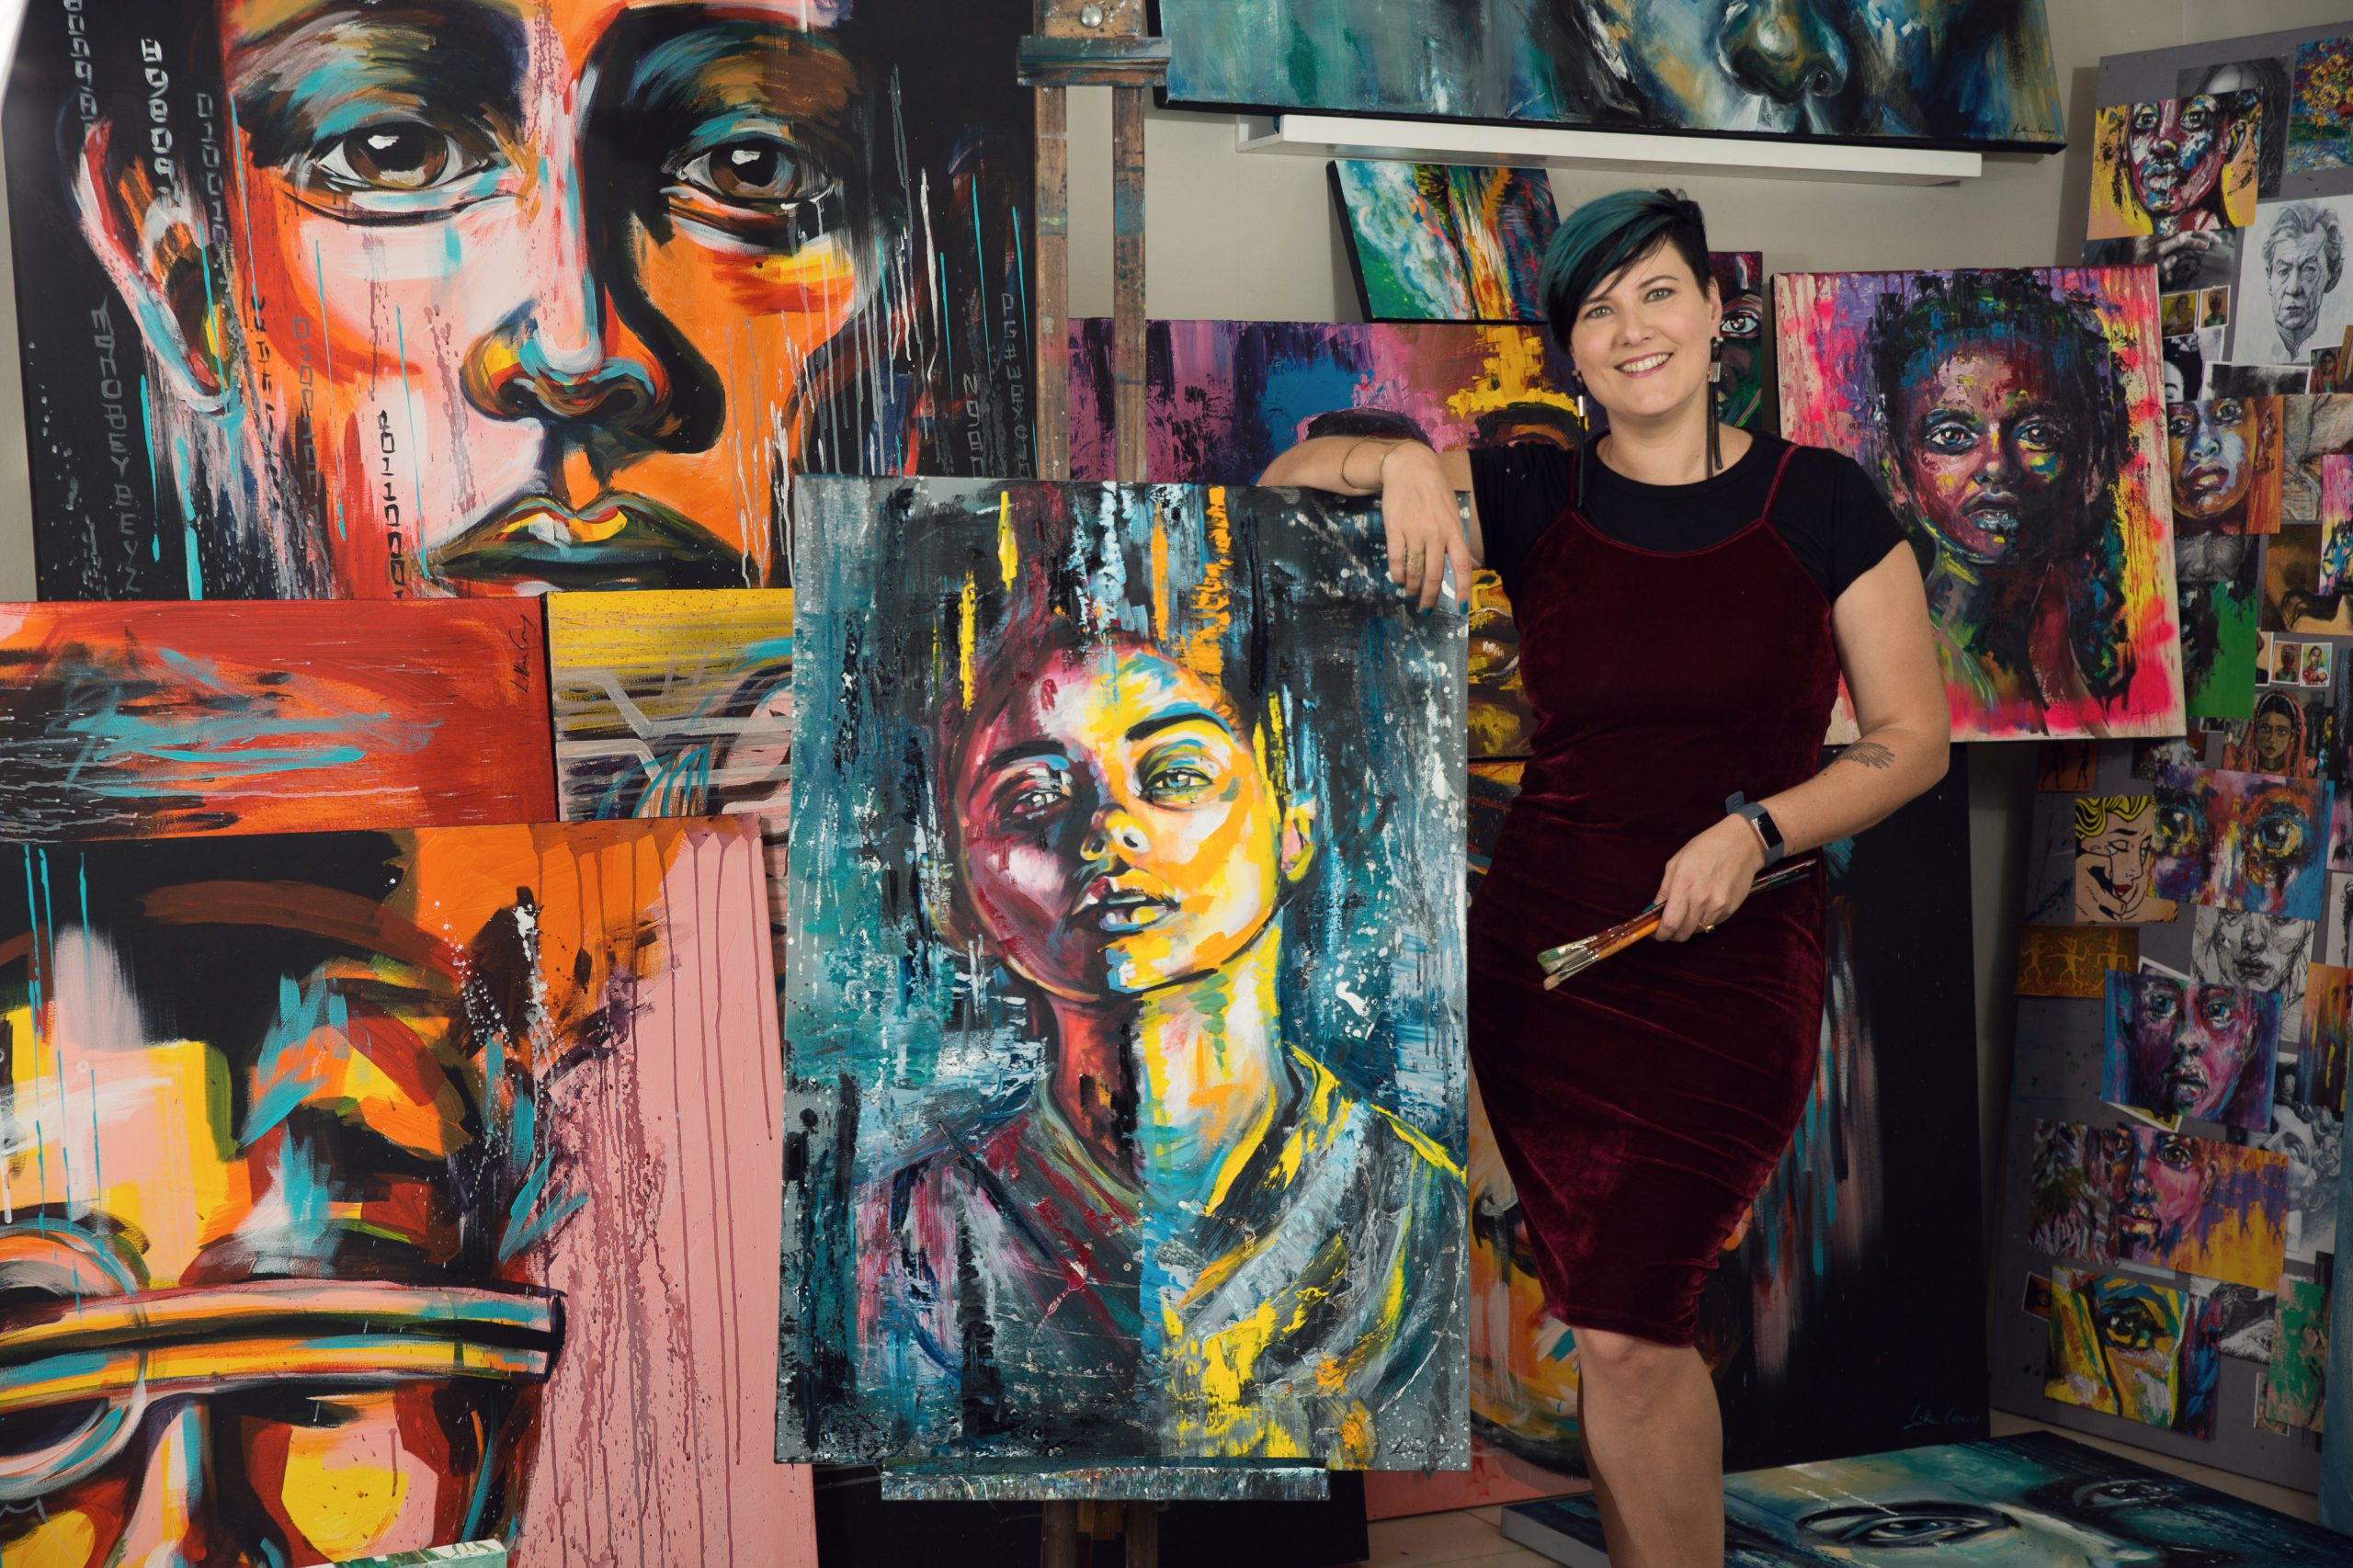 Artist Lillian Gray standing next to her easel with a paint brush